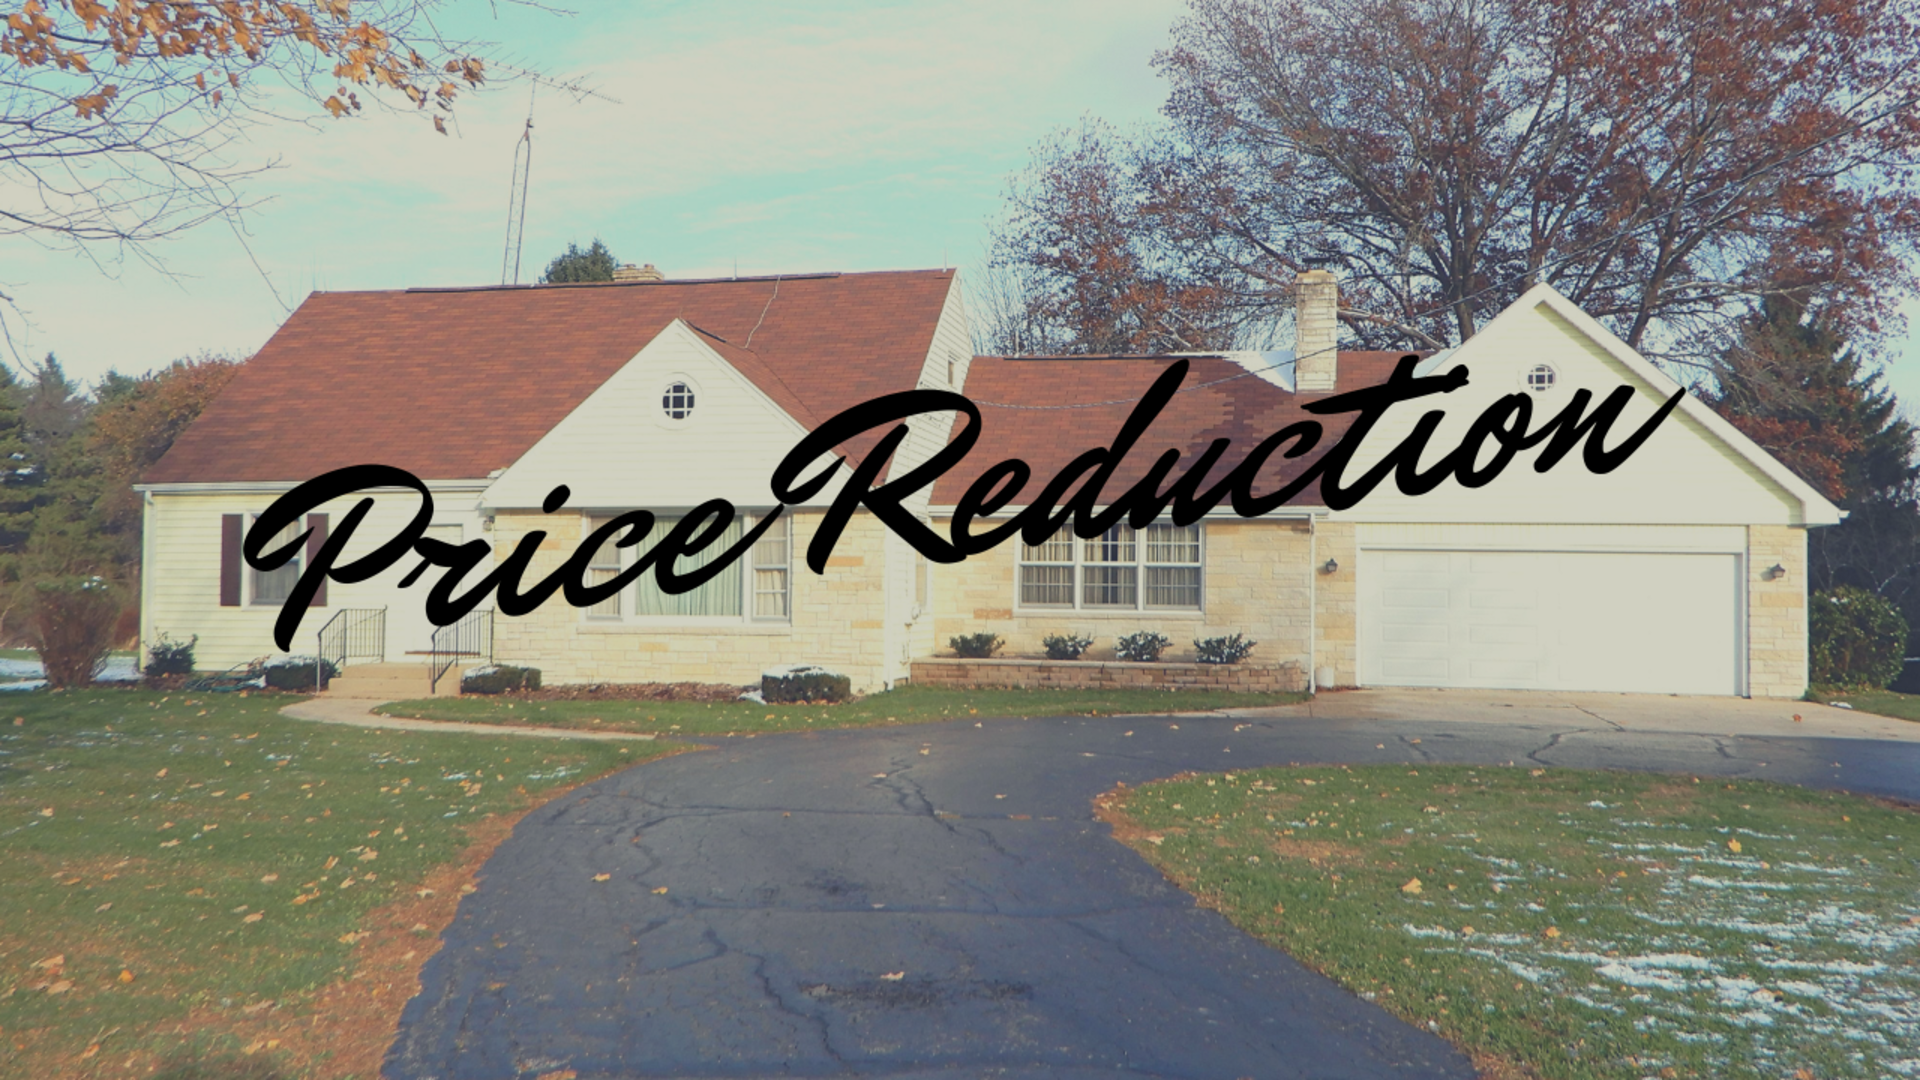 Price Reduction: January 15th